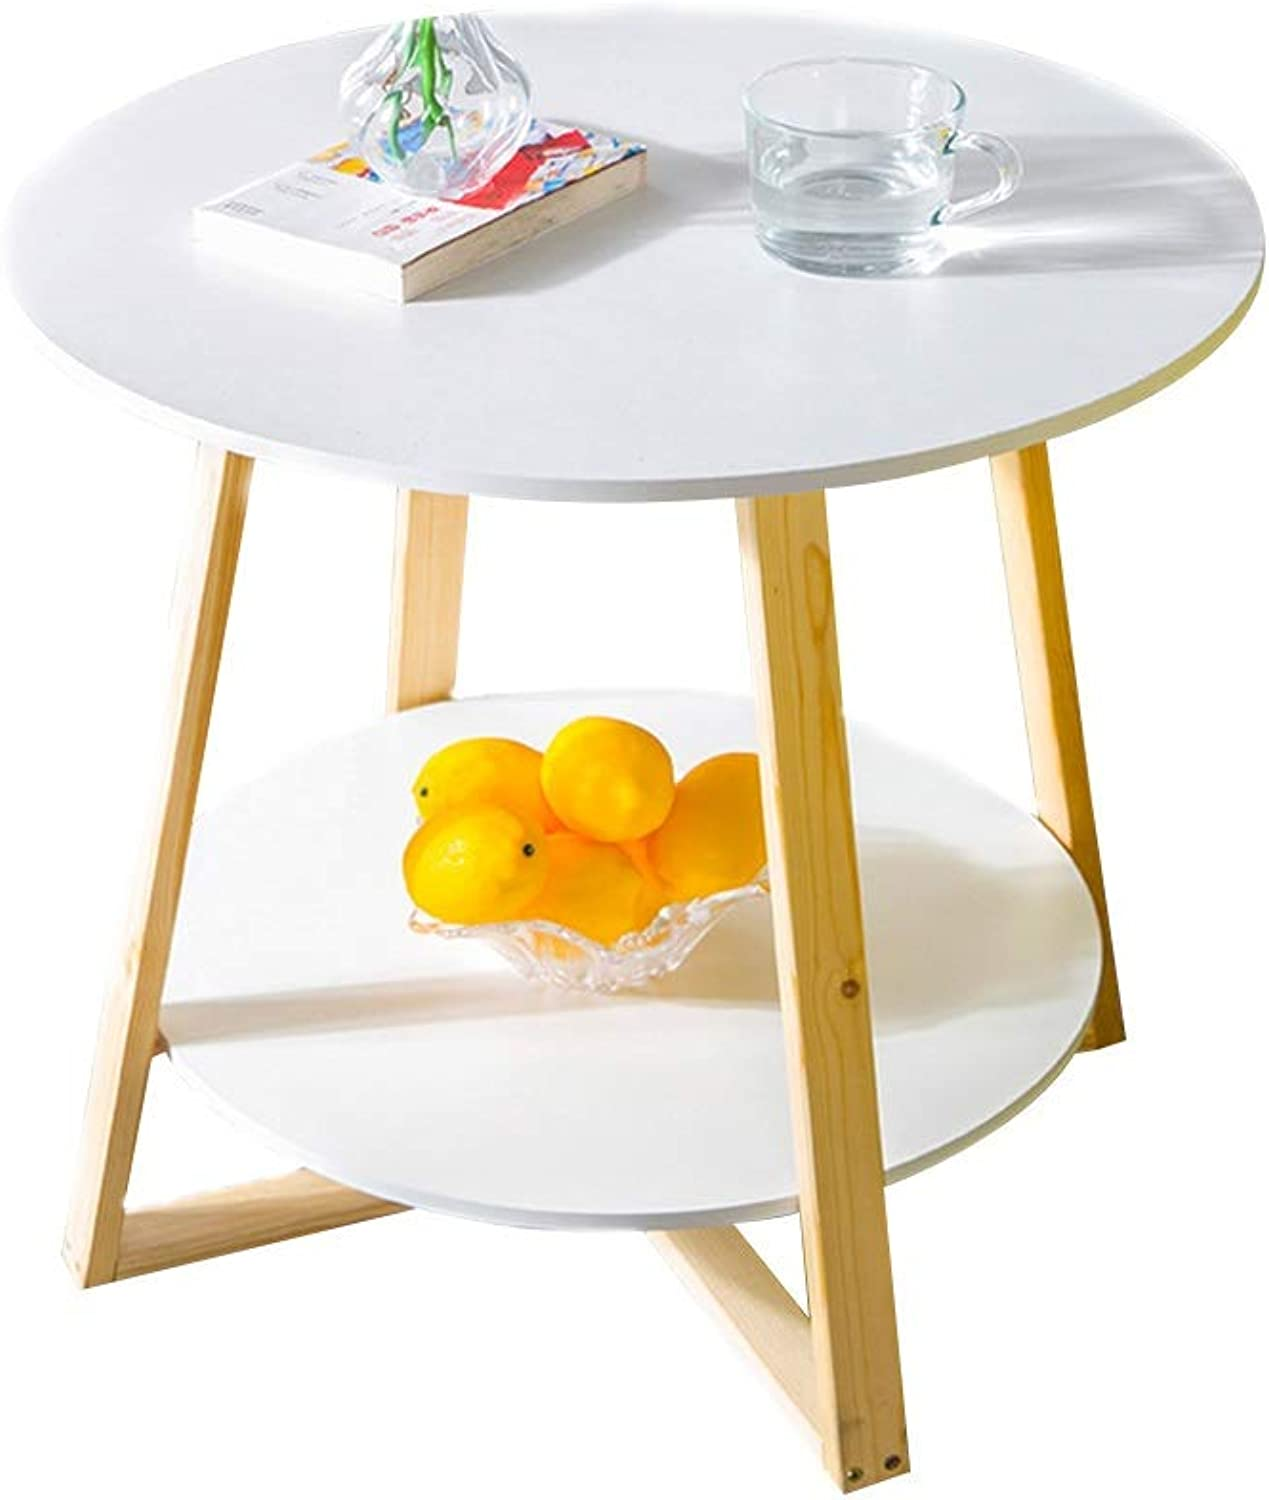 Table Coffee Table, Double Storey Small Apartment Sofa Side Table Multipurpose Small Round Table Nordic Household Small Tea Table in The Living Room (color   White)